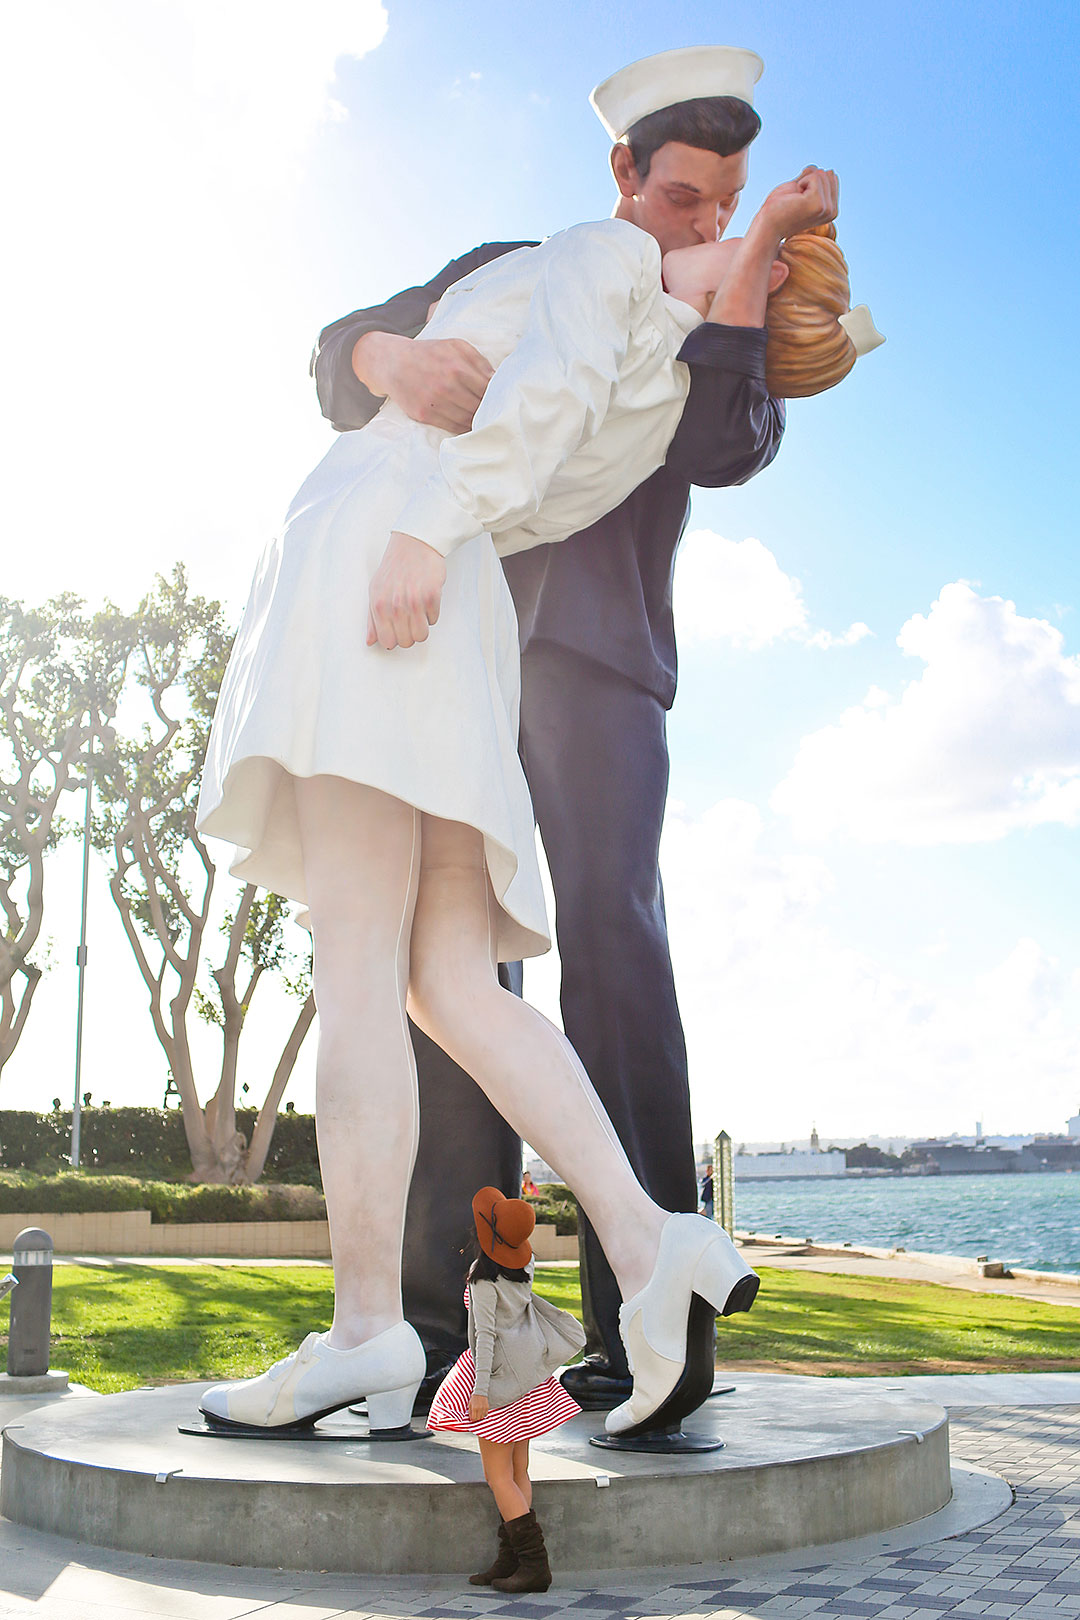 Unconditional Surrender Statue San Diego + Top Free Things to Do in San Diego